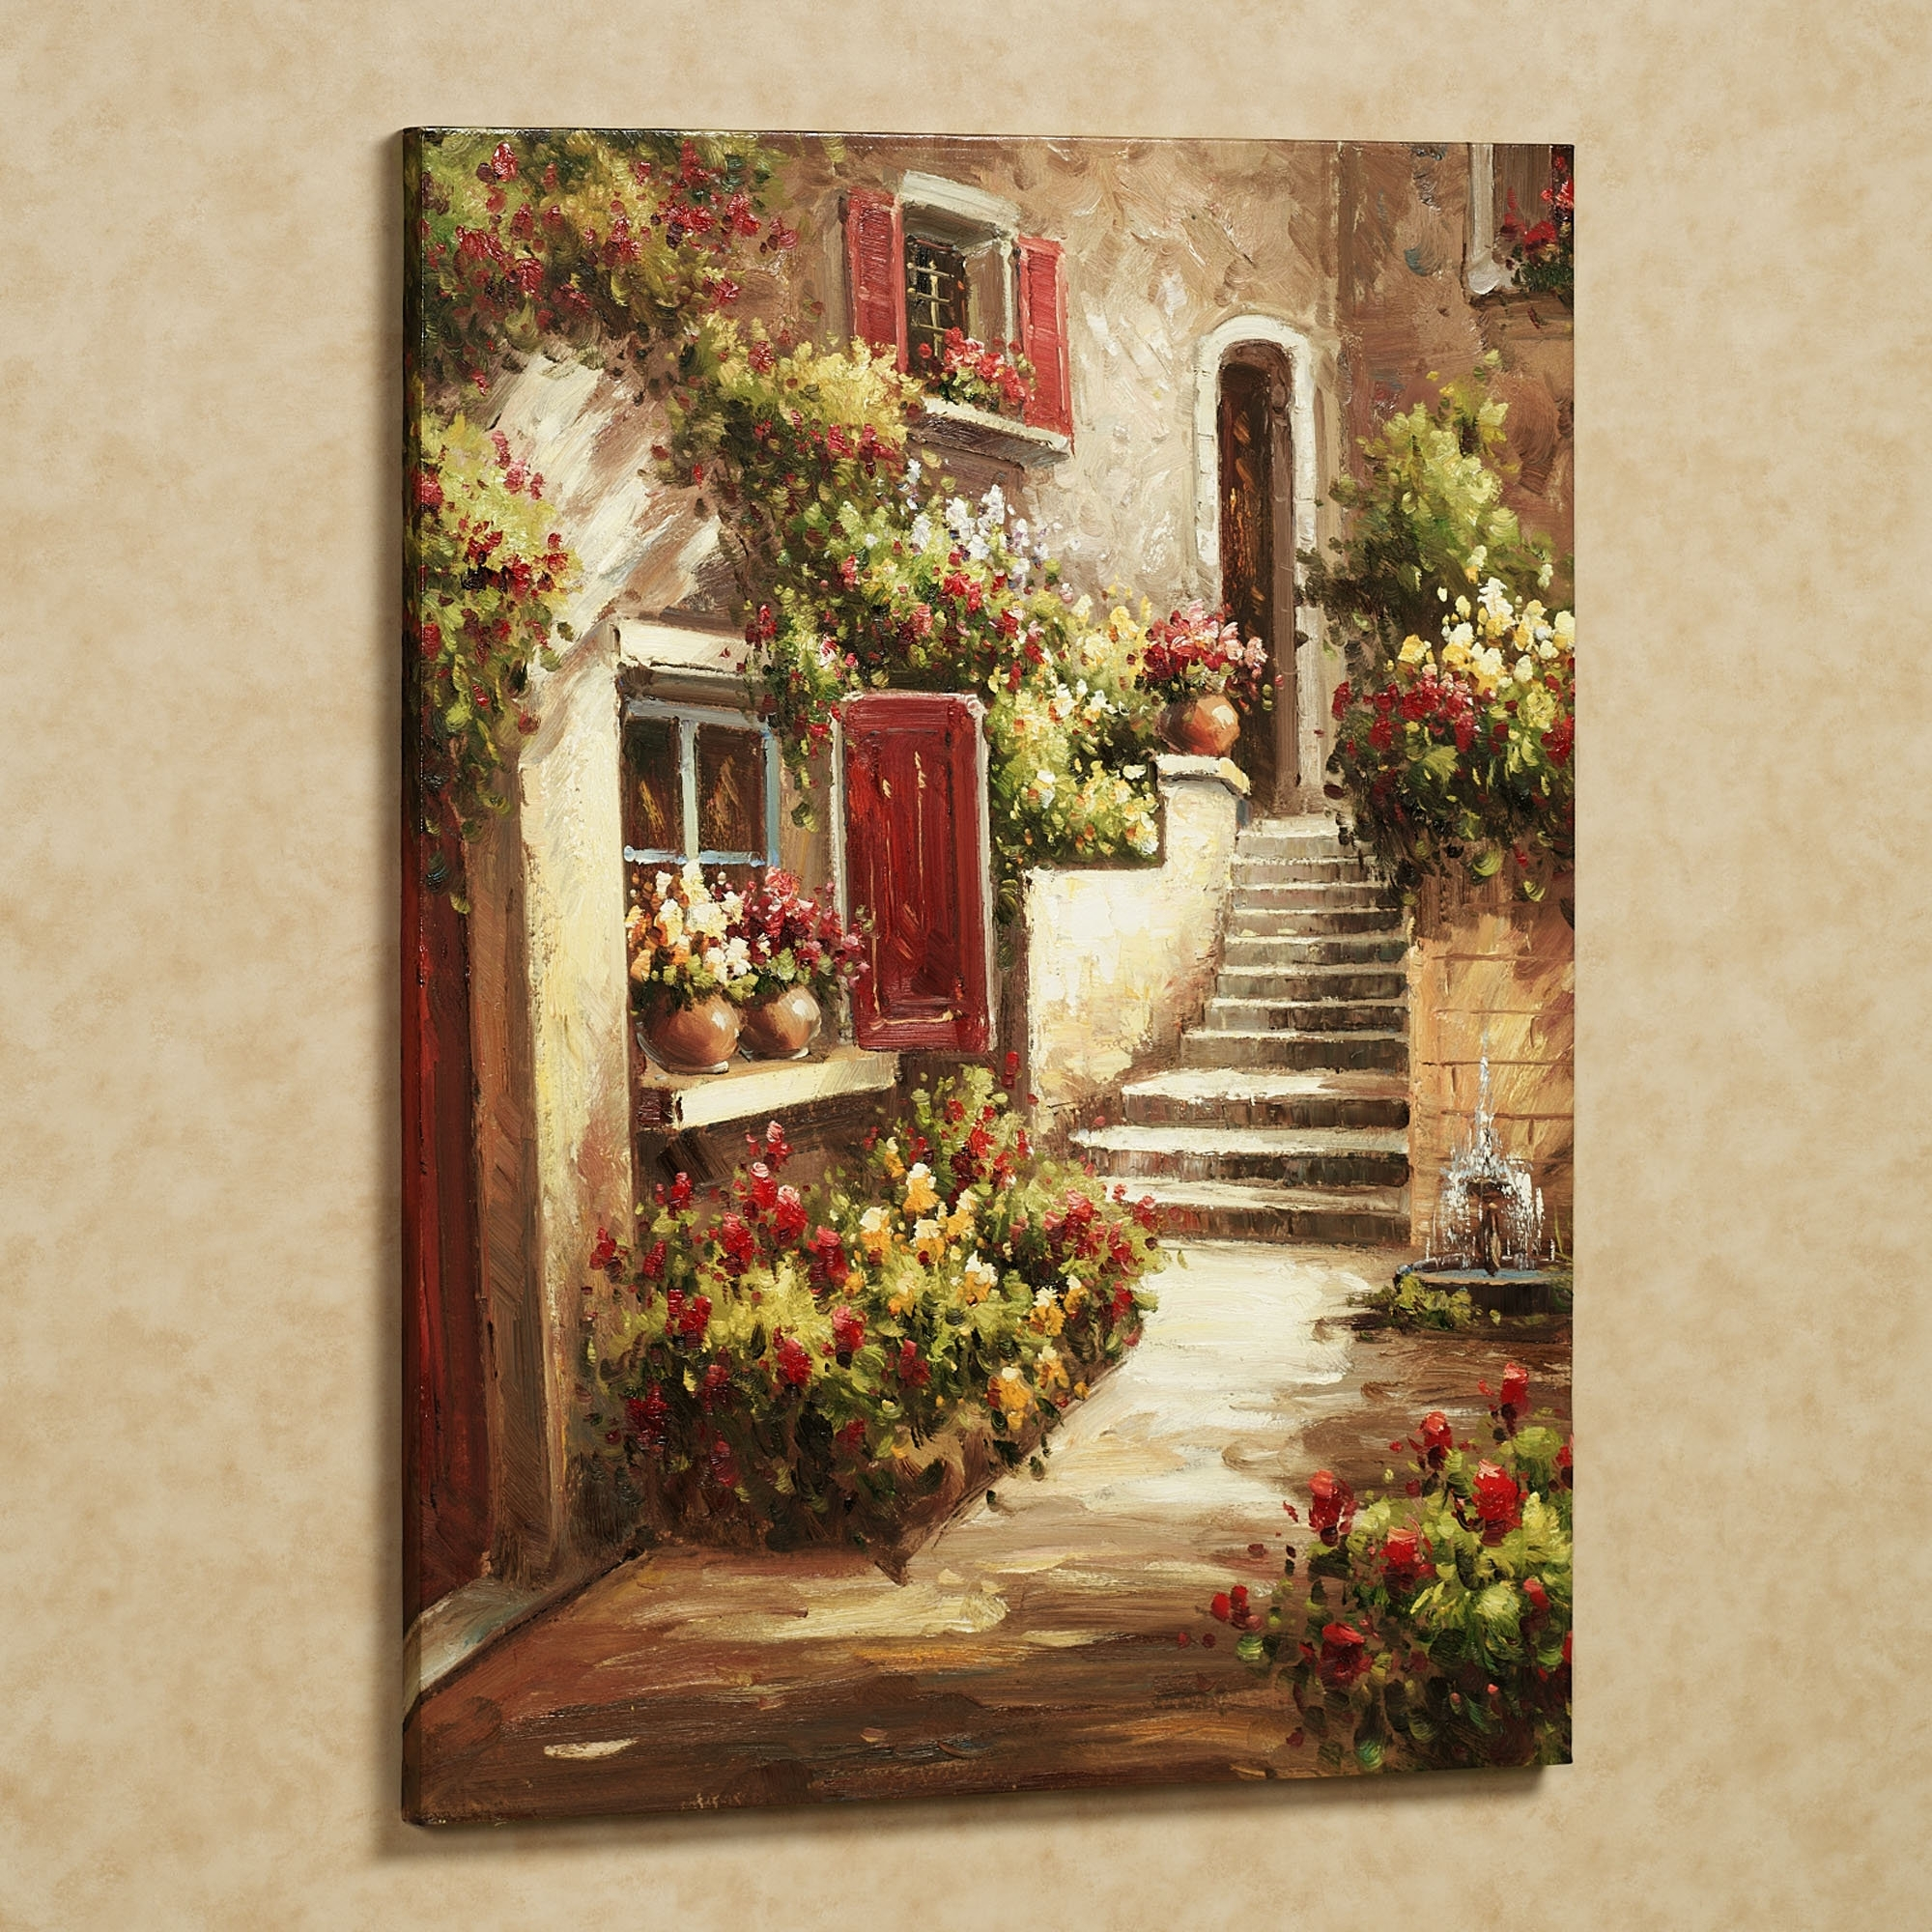 Tuscany Art | Home Tuscan Flowers Canvas Art Red | Art Tuscany With Most Up To Date Canvas Wall Art Of Italy (View 12 of 15)